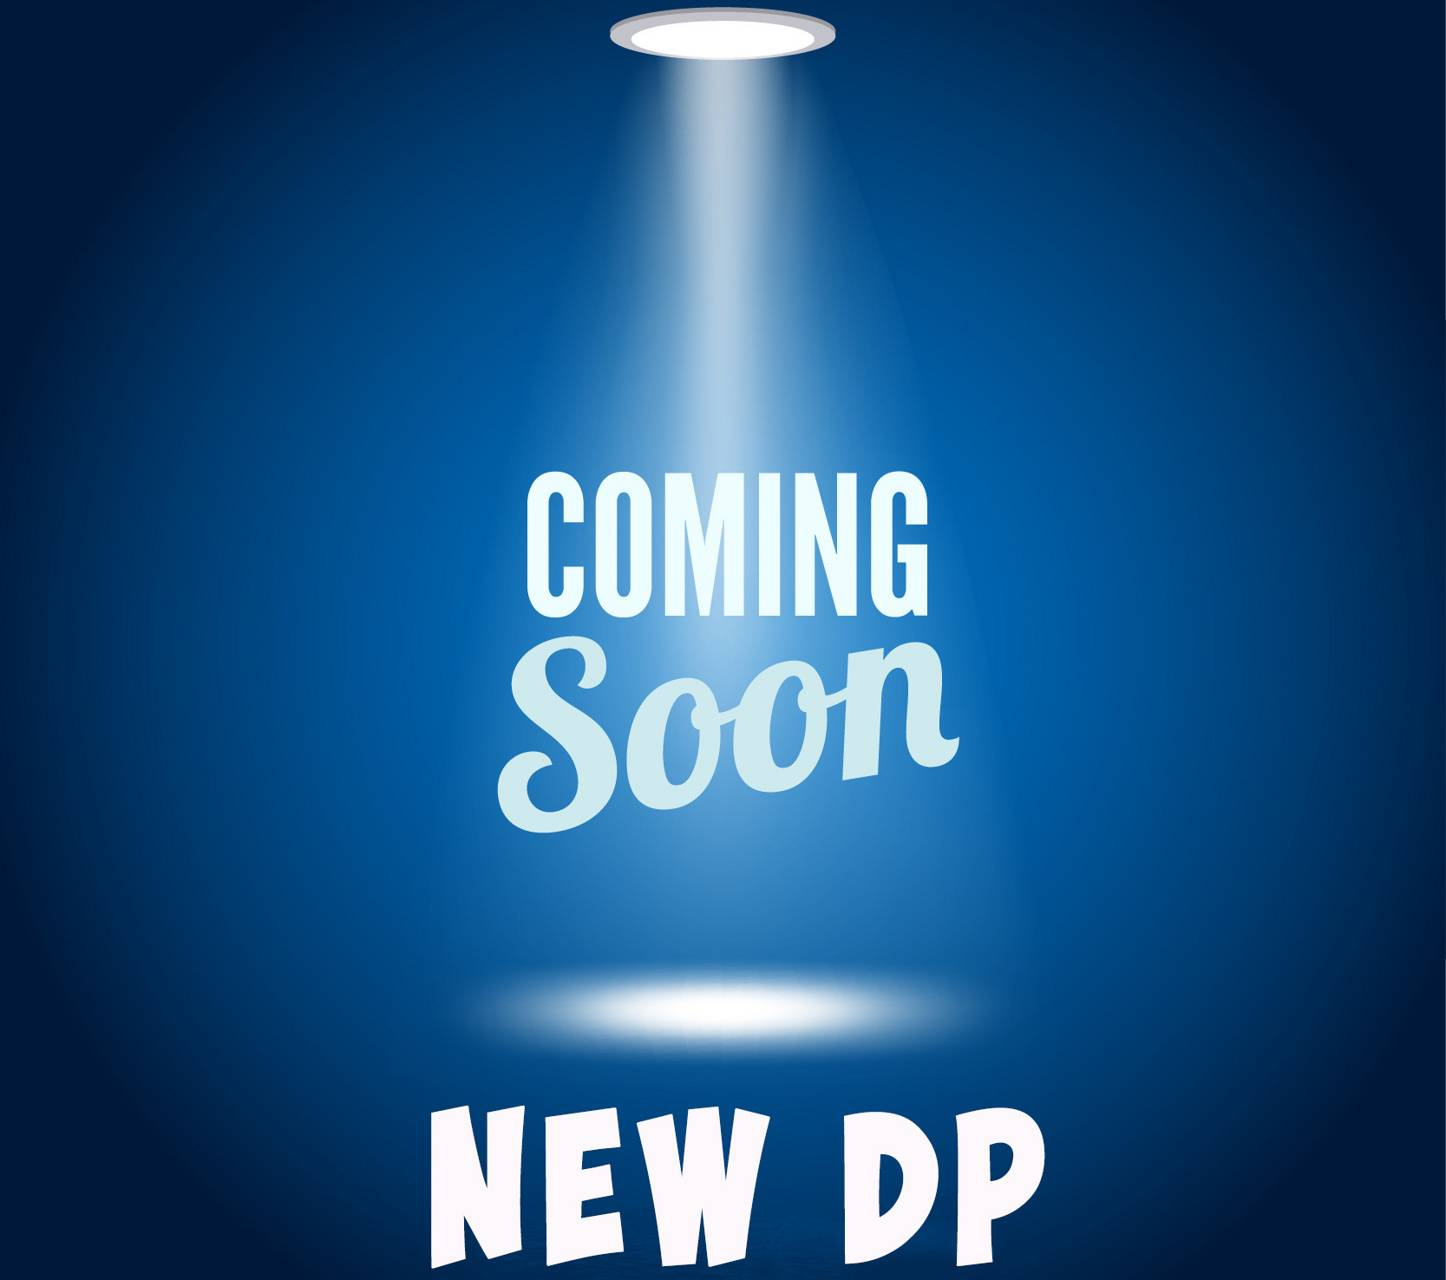 Coming Soon New Dp